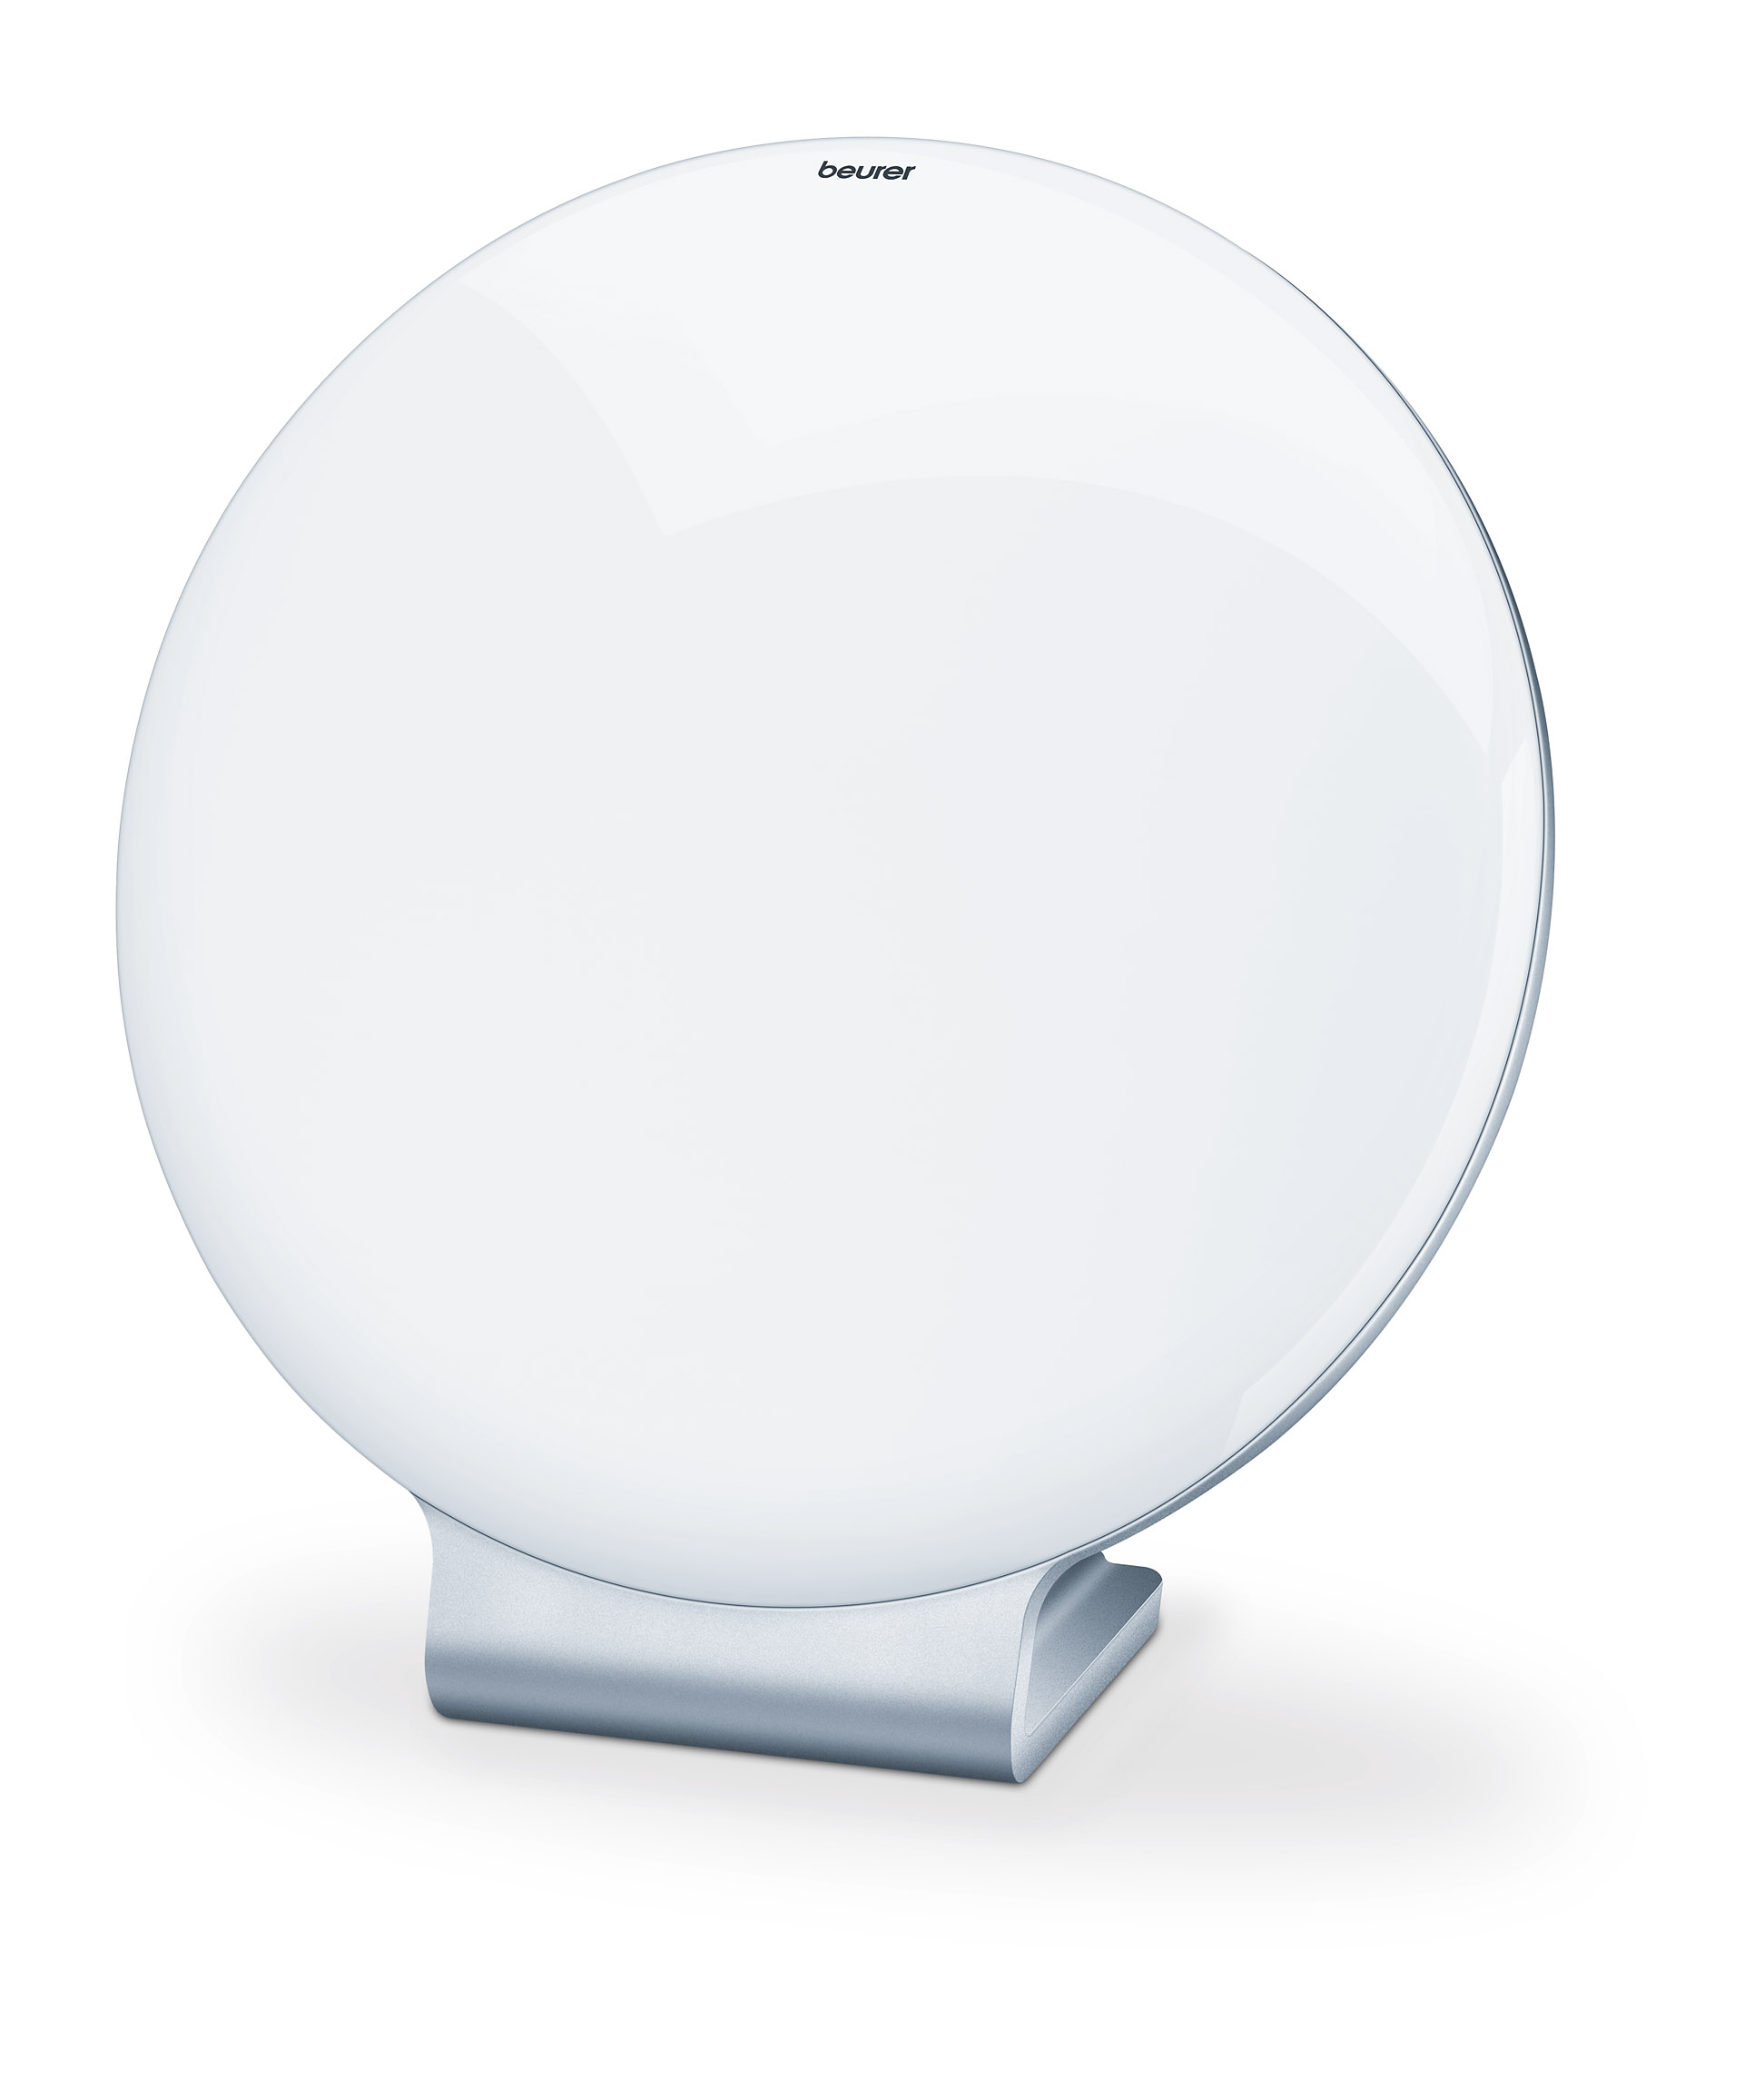 Beurer - TL 50 Light Therapy Lamp - 3 Years Warranty